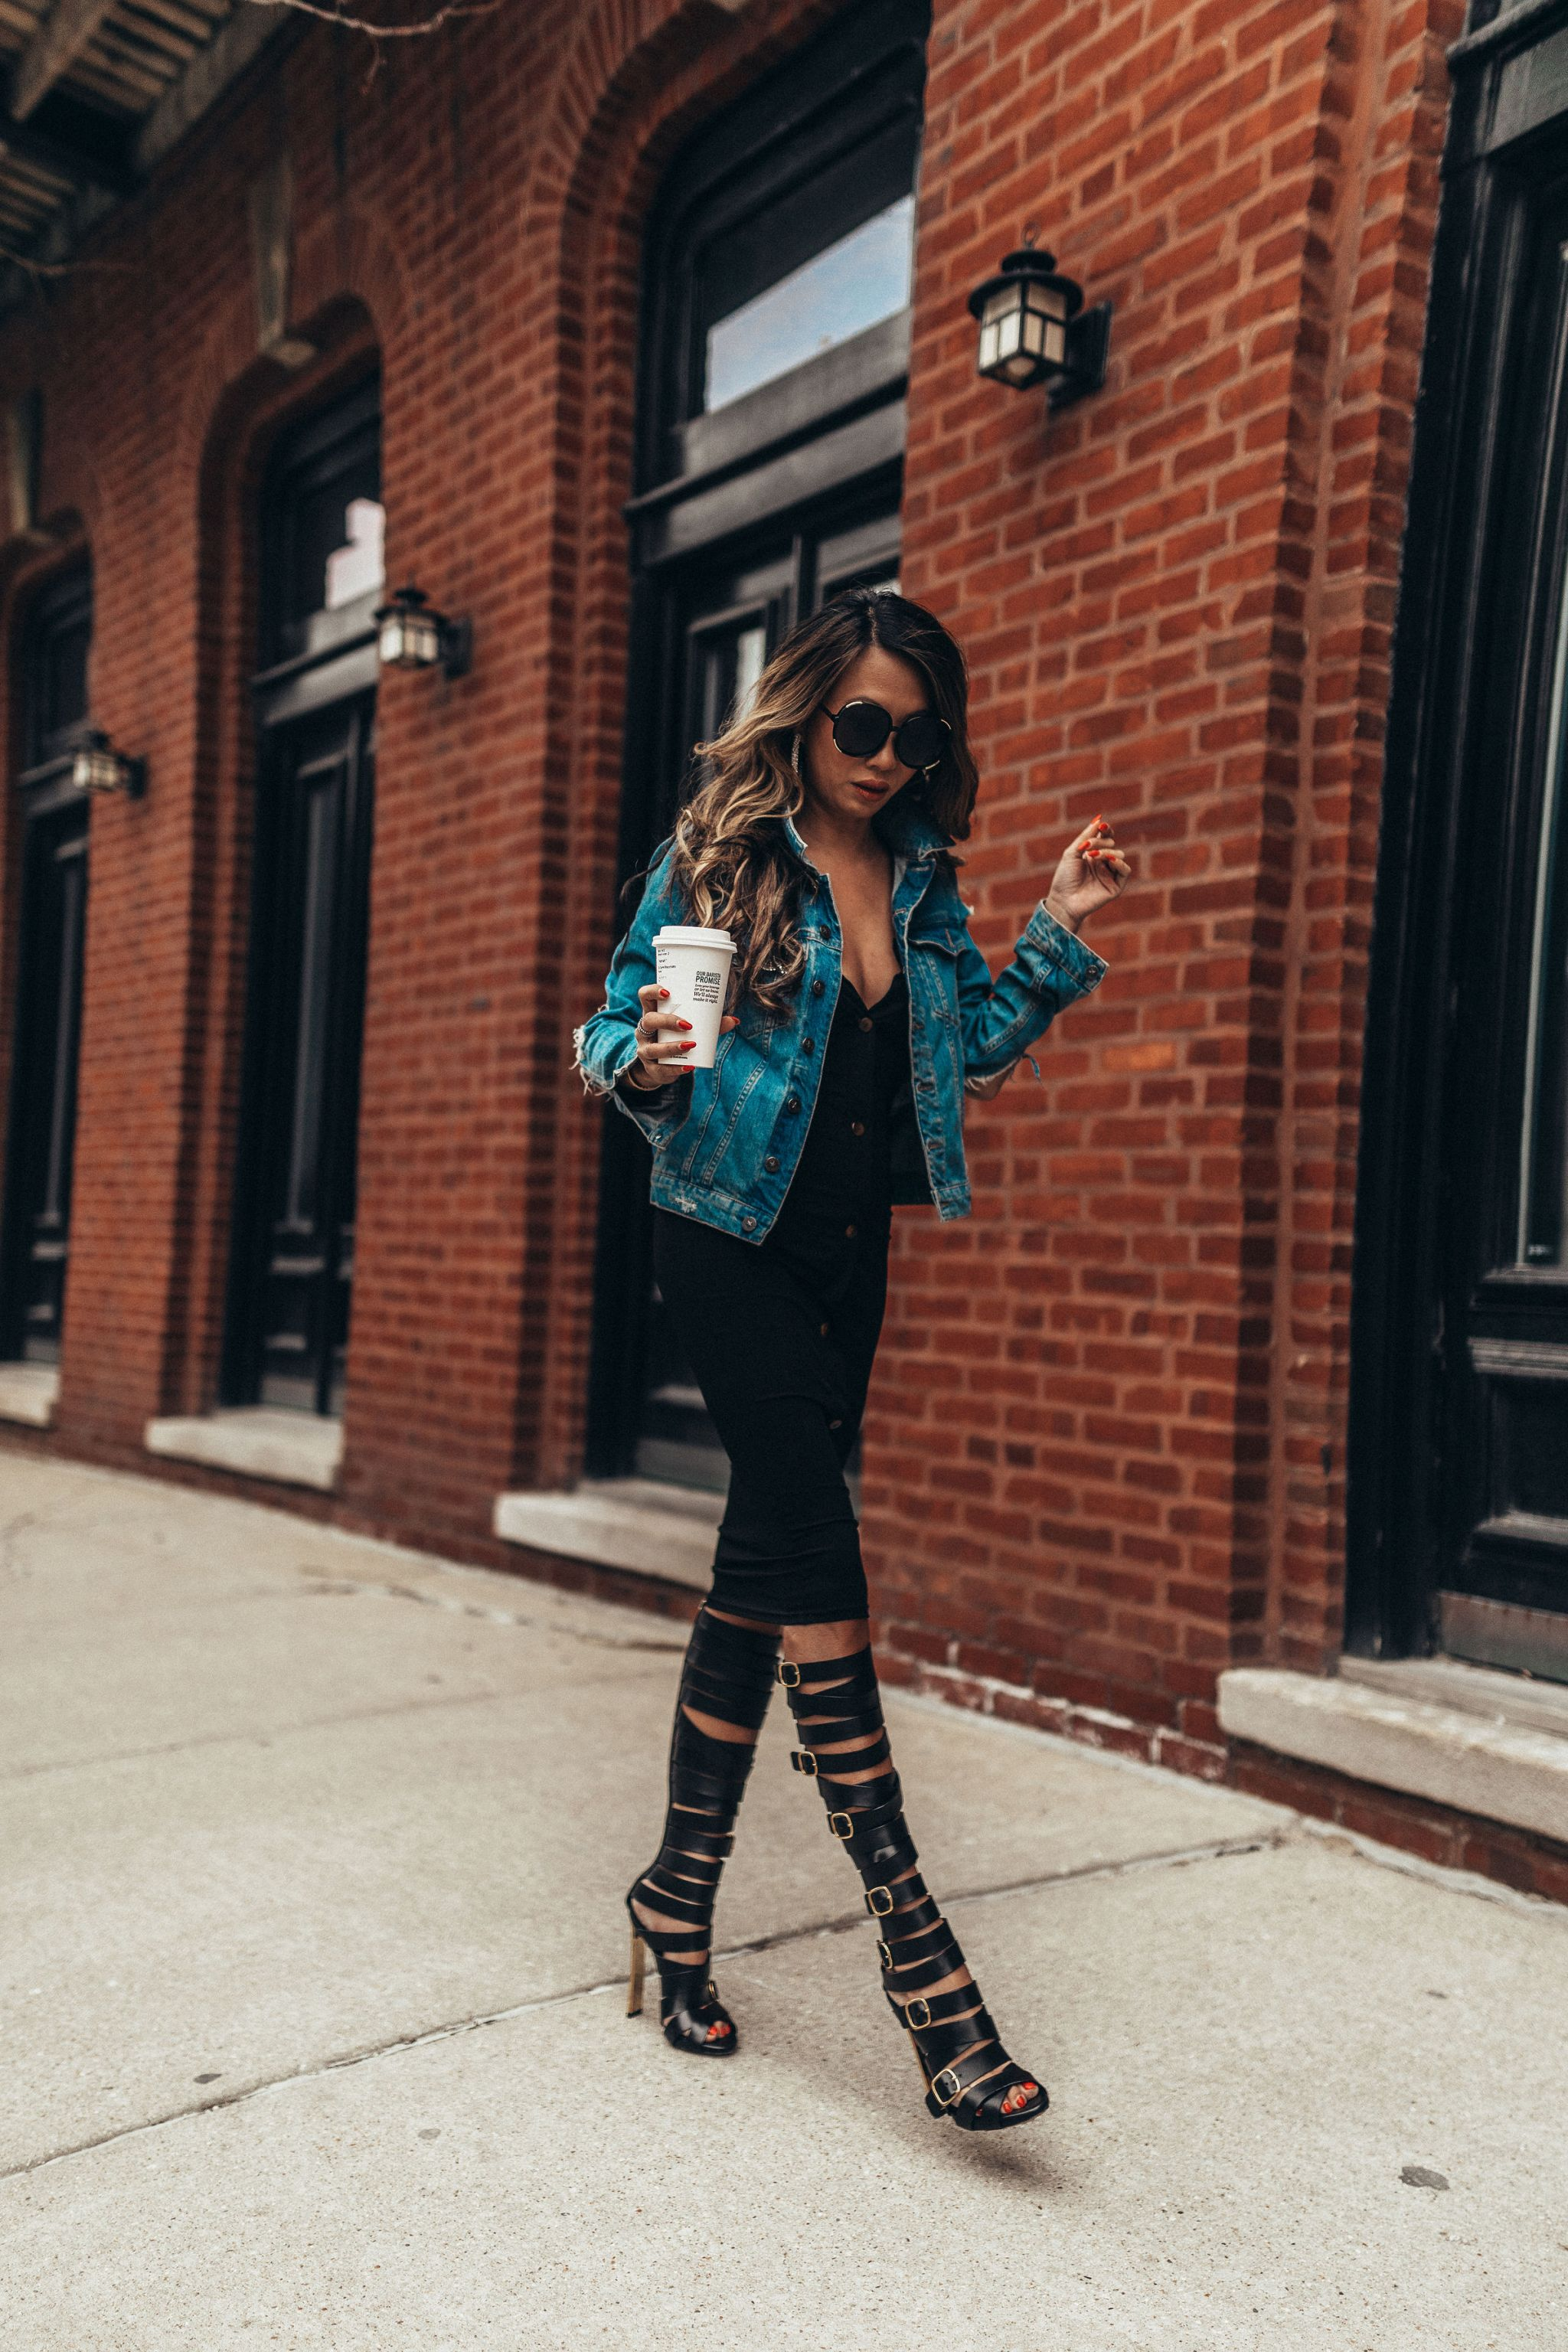 3 ways to style a little black dress, 1 dress 3 ways, how to style a black dress, how to dress up a black midi dress, outfit ideas, fashion blogger, style blogger, street style, how to style a dress multiple ways, denim jacket, distressed denim jacket outfits, black dress outfits